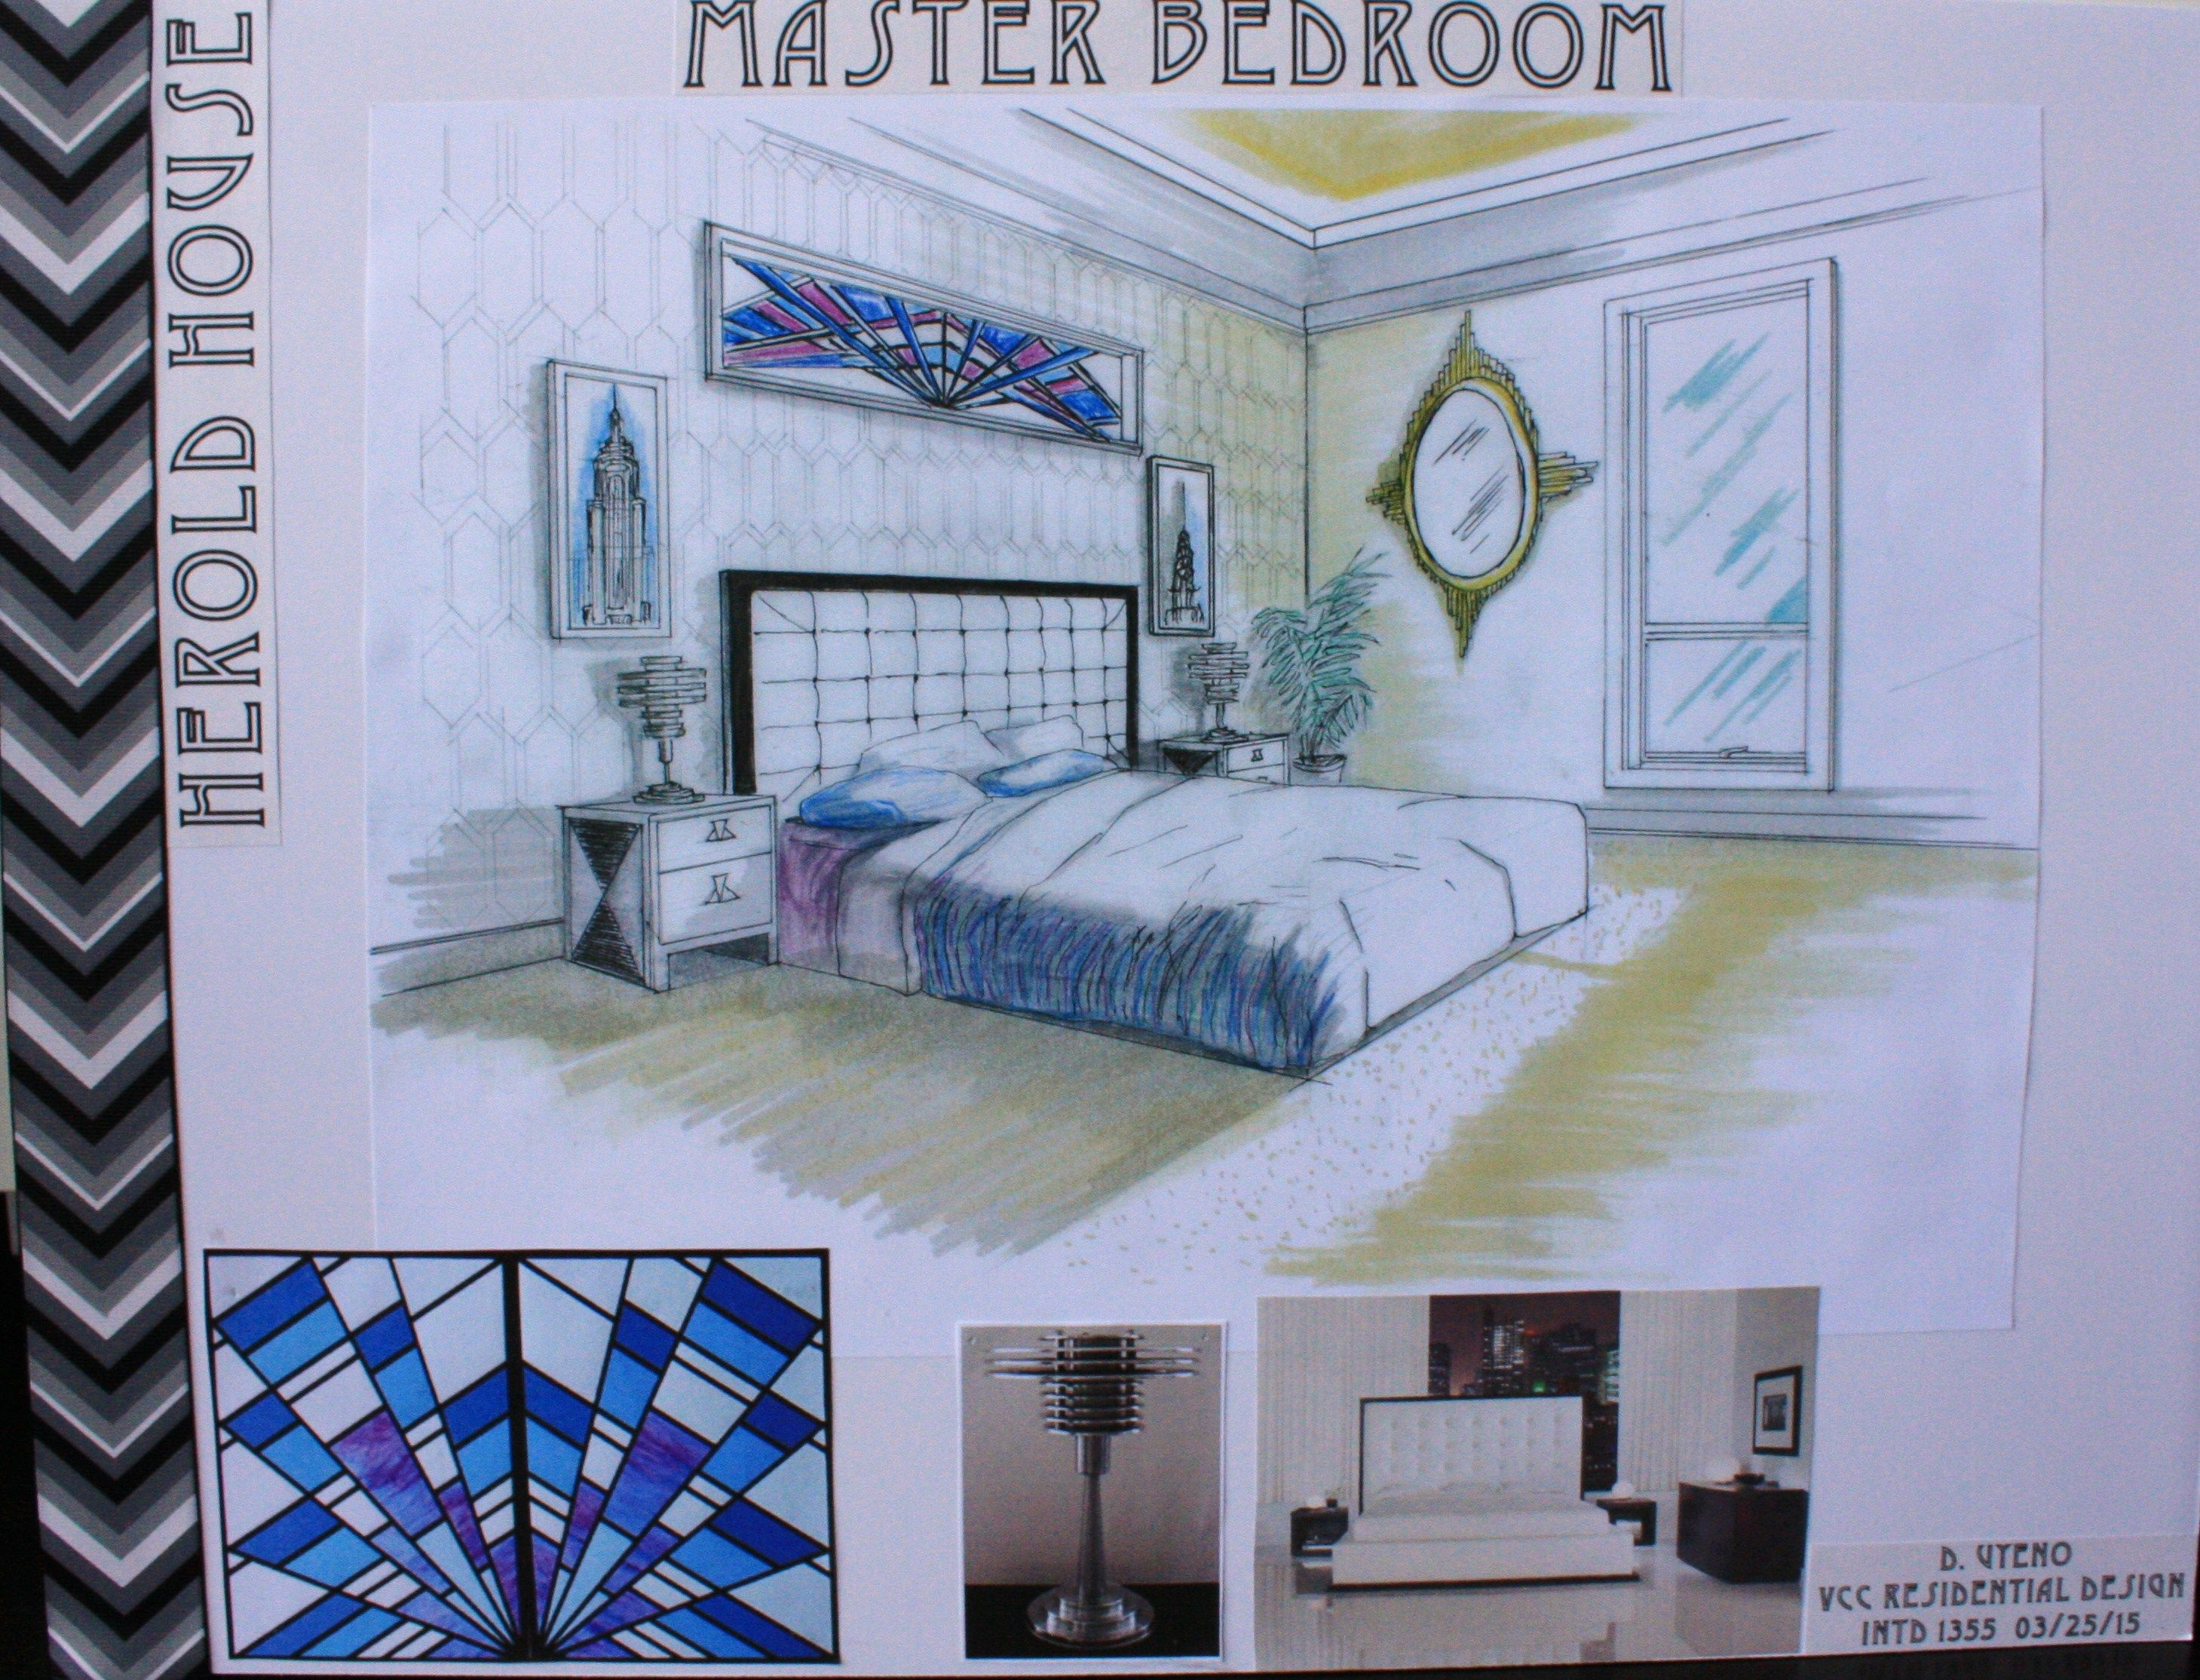 Master Bedroom board fro VCC residential Design Rendered